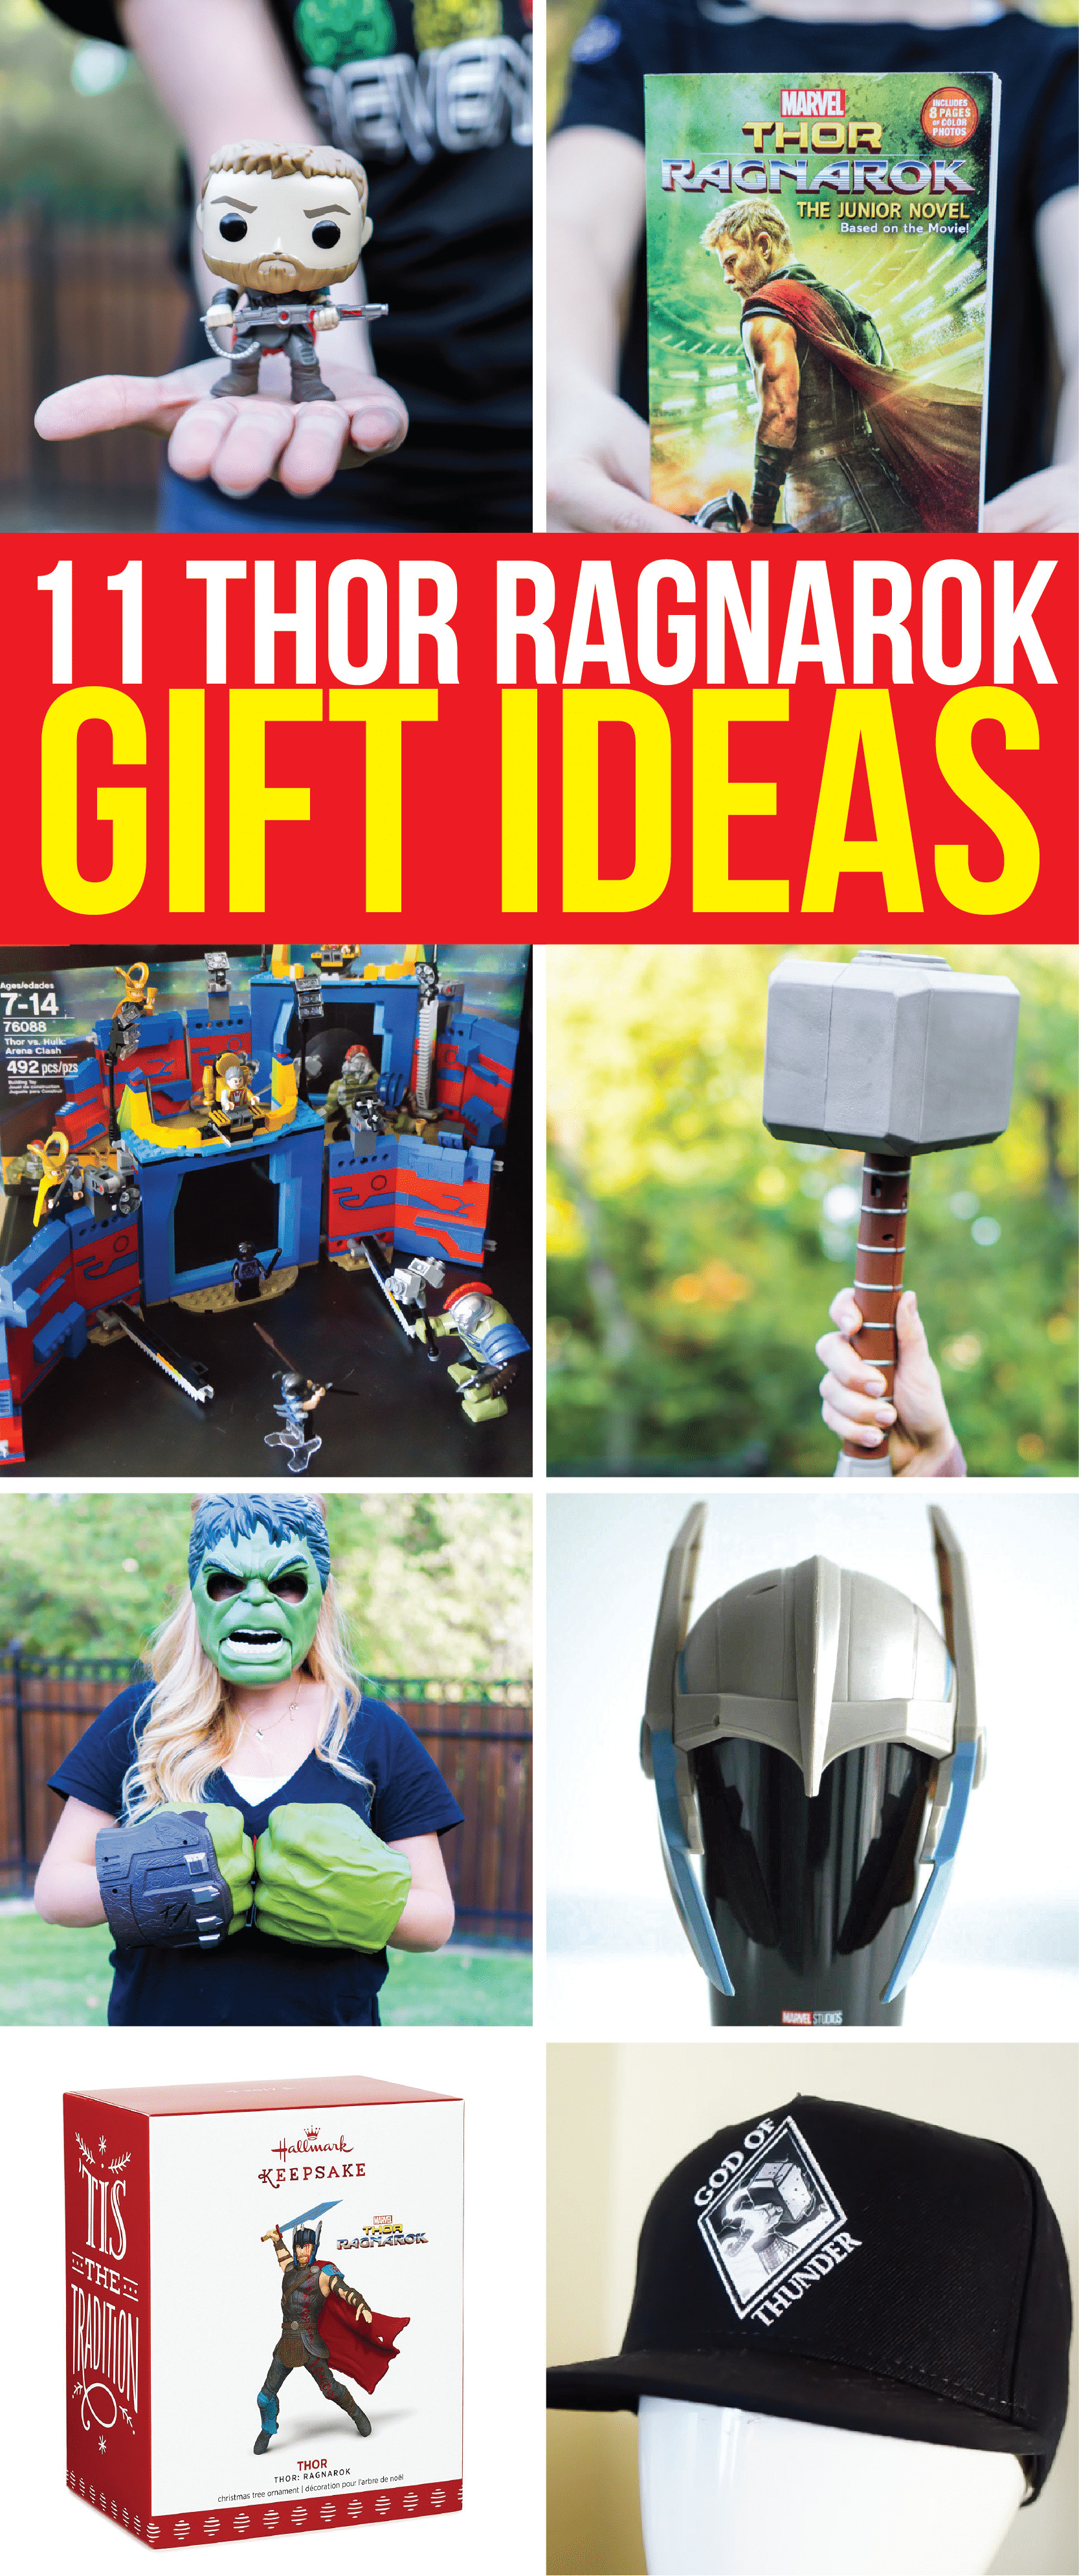 Best ideas about Marvel Gift Ideas . Save or Pin 11 Ragnarokin Gift Ideas for Thor Ragnarok and Marvel Now.